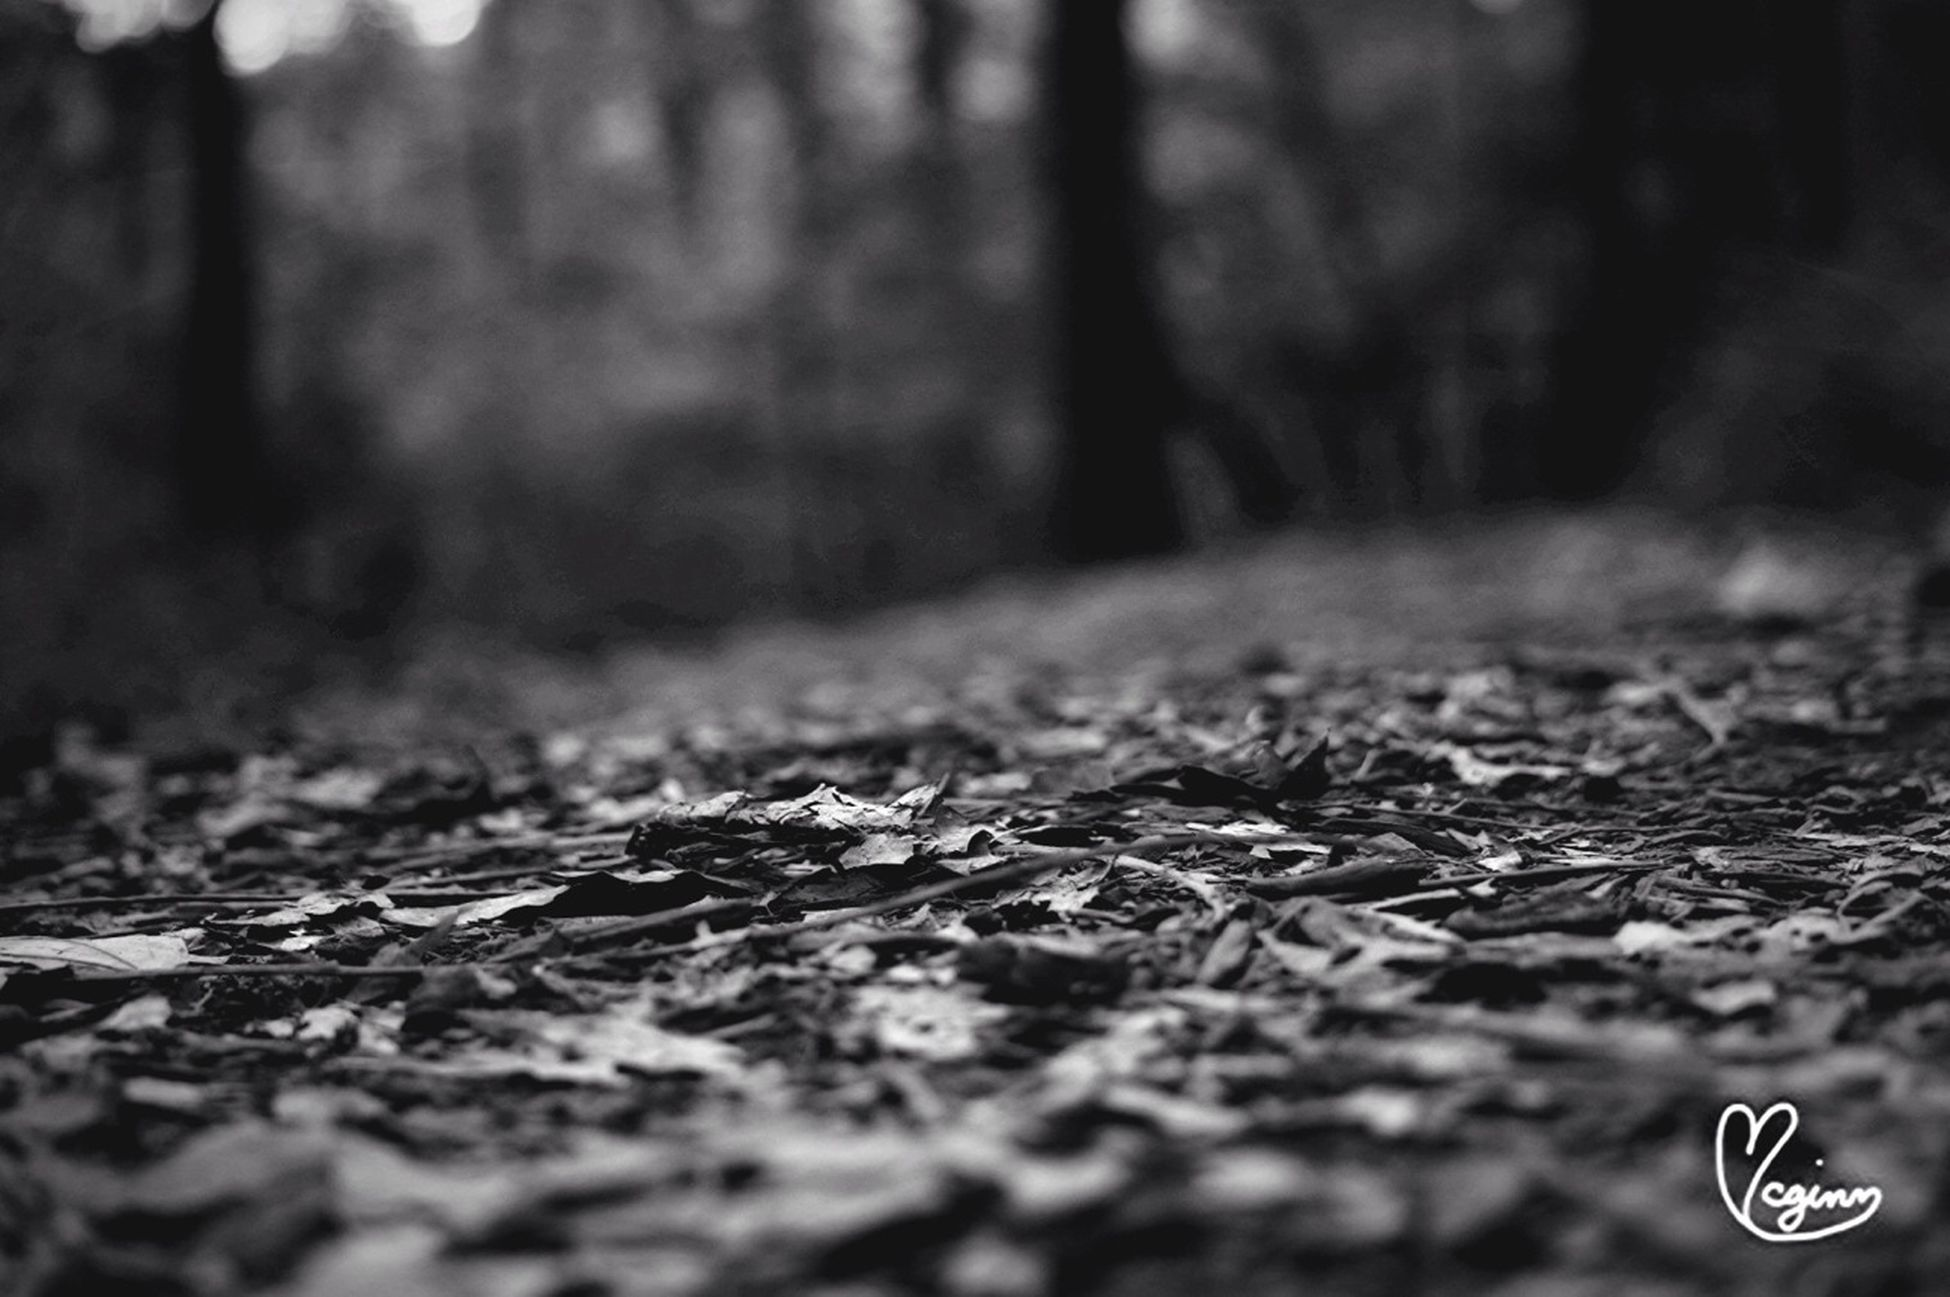 selective focus, surface level, close-up, focus on foreground, leaf, ground, dry, no people, outdoors, nature, fallen, asphalt, street, day, field, grass, road, dirt, textured, falling